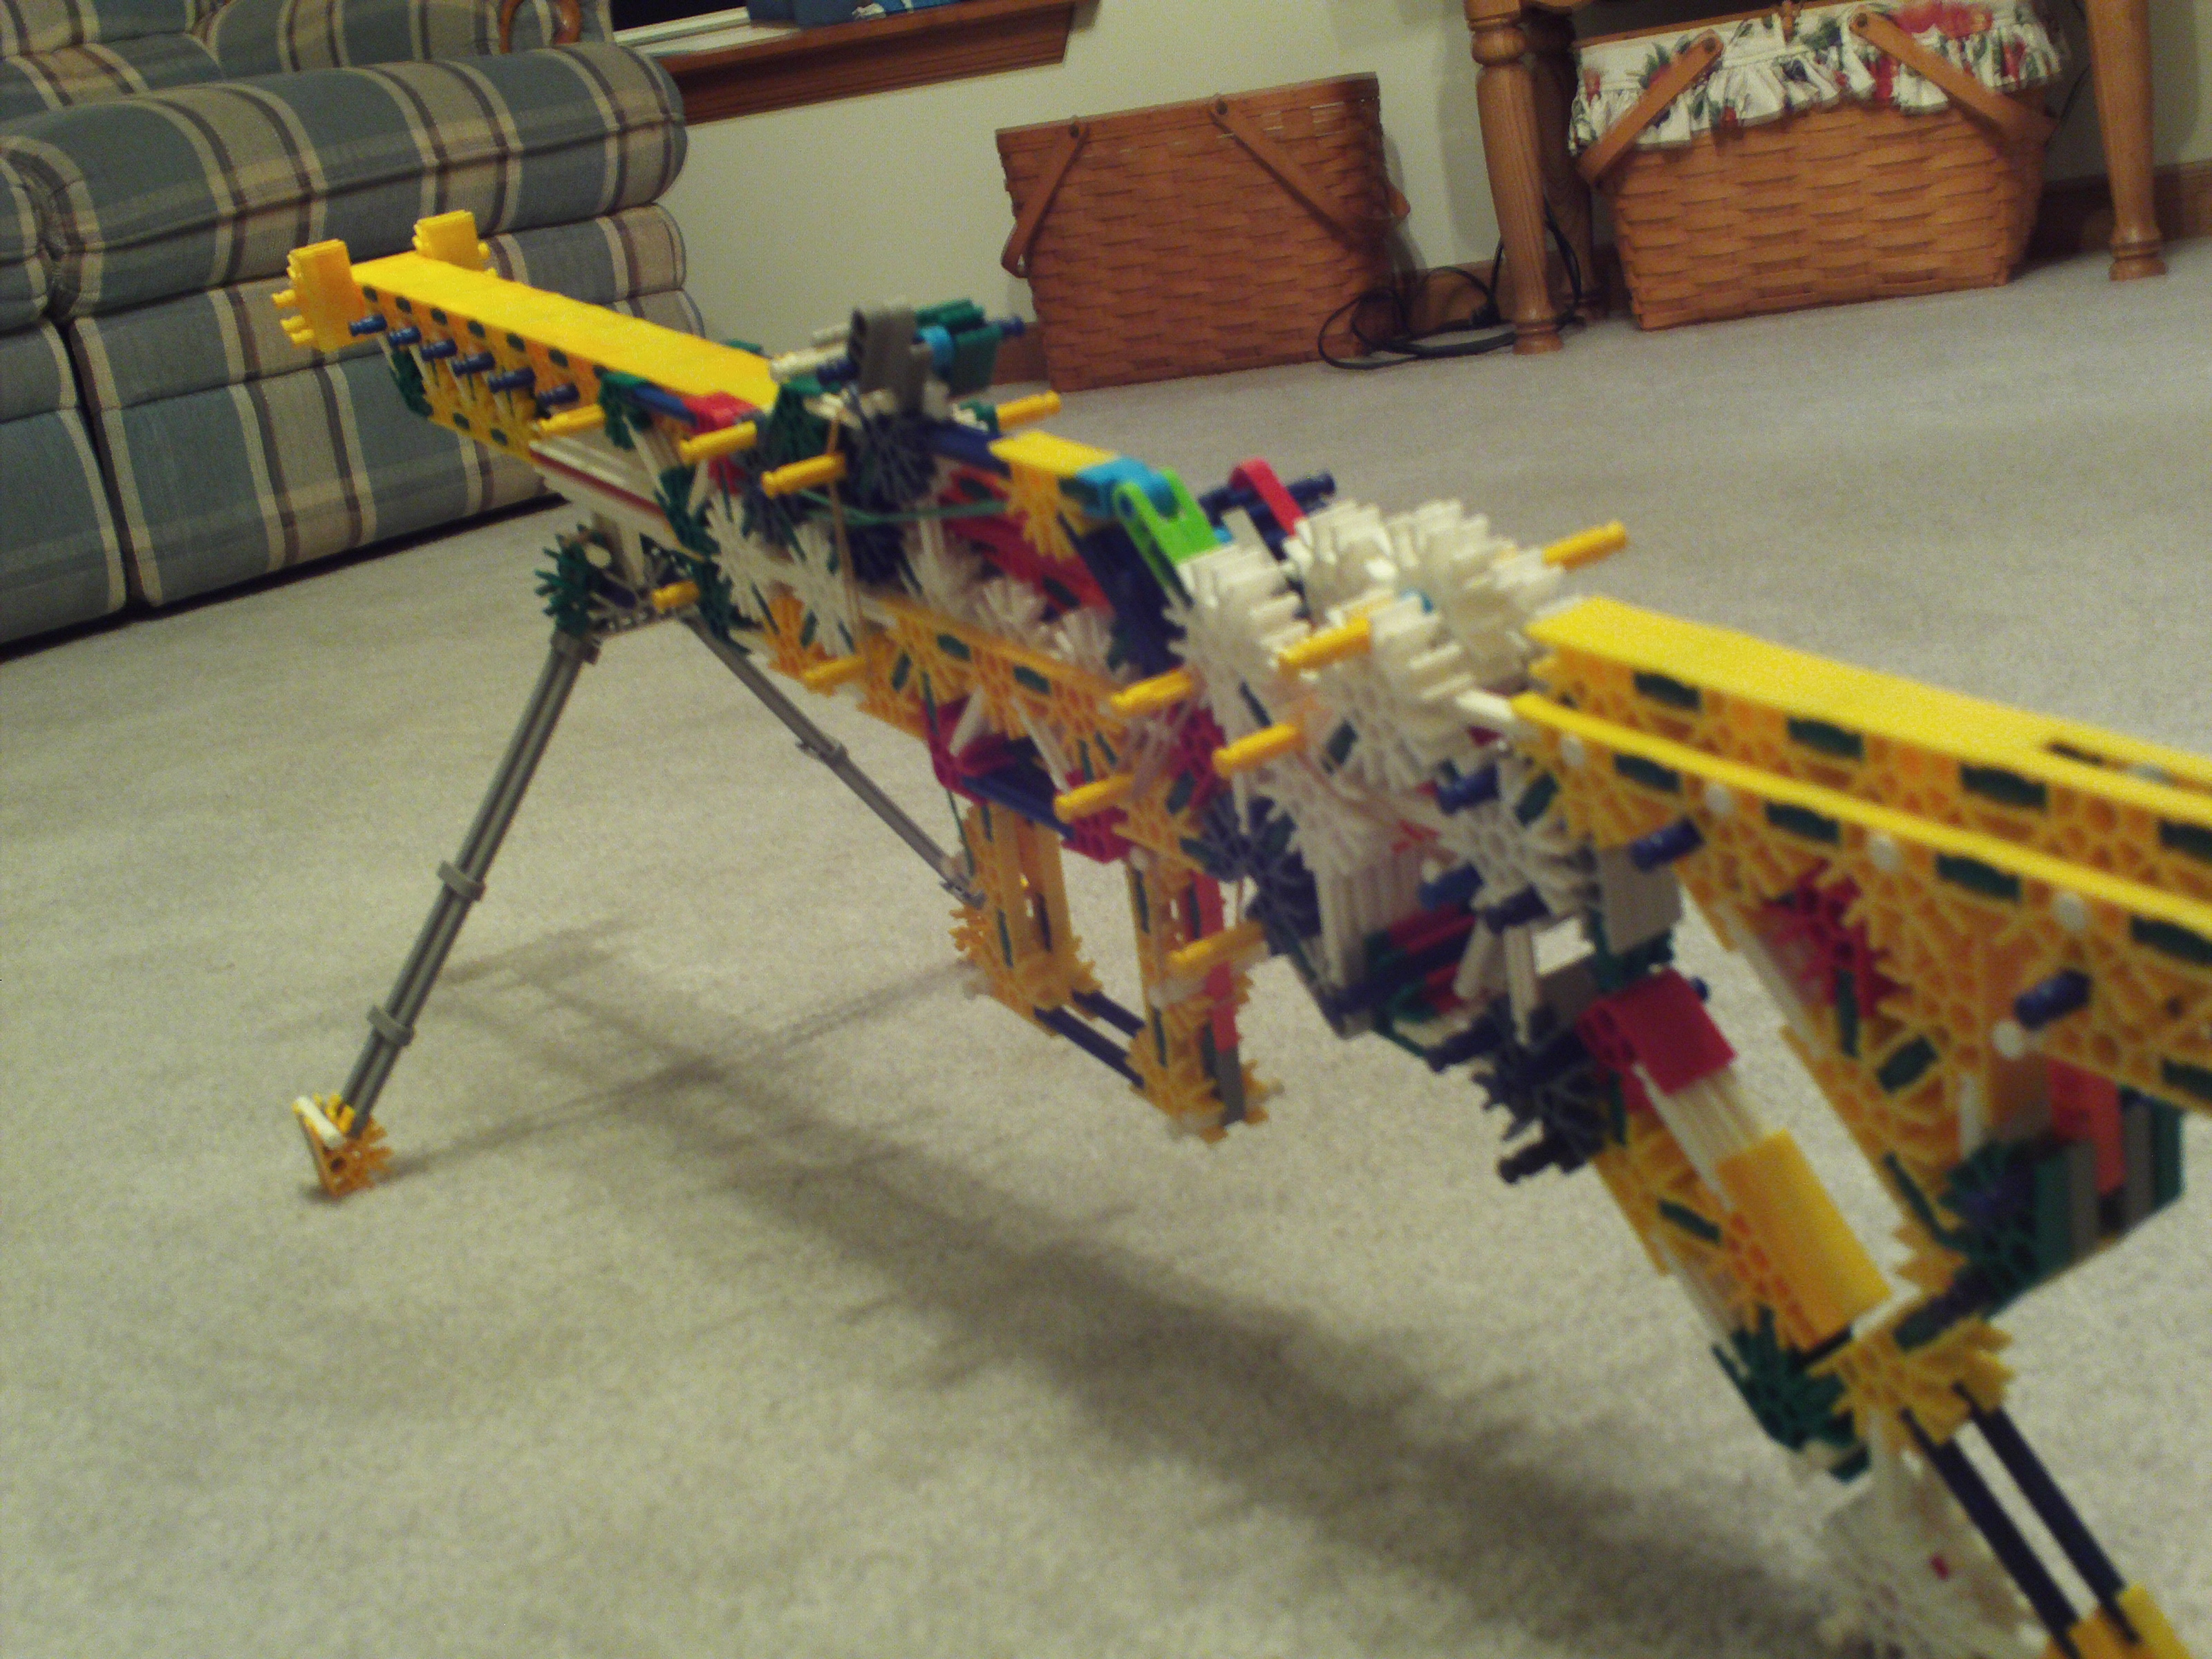 CM-10, A Bolt Action Knex Rifle